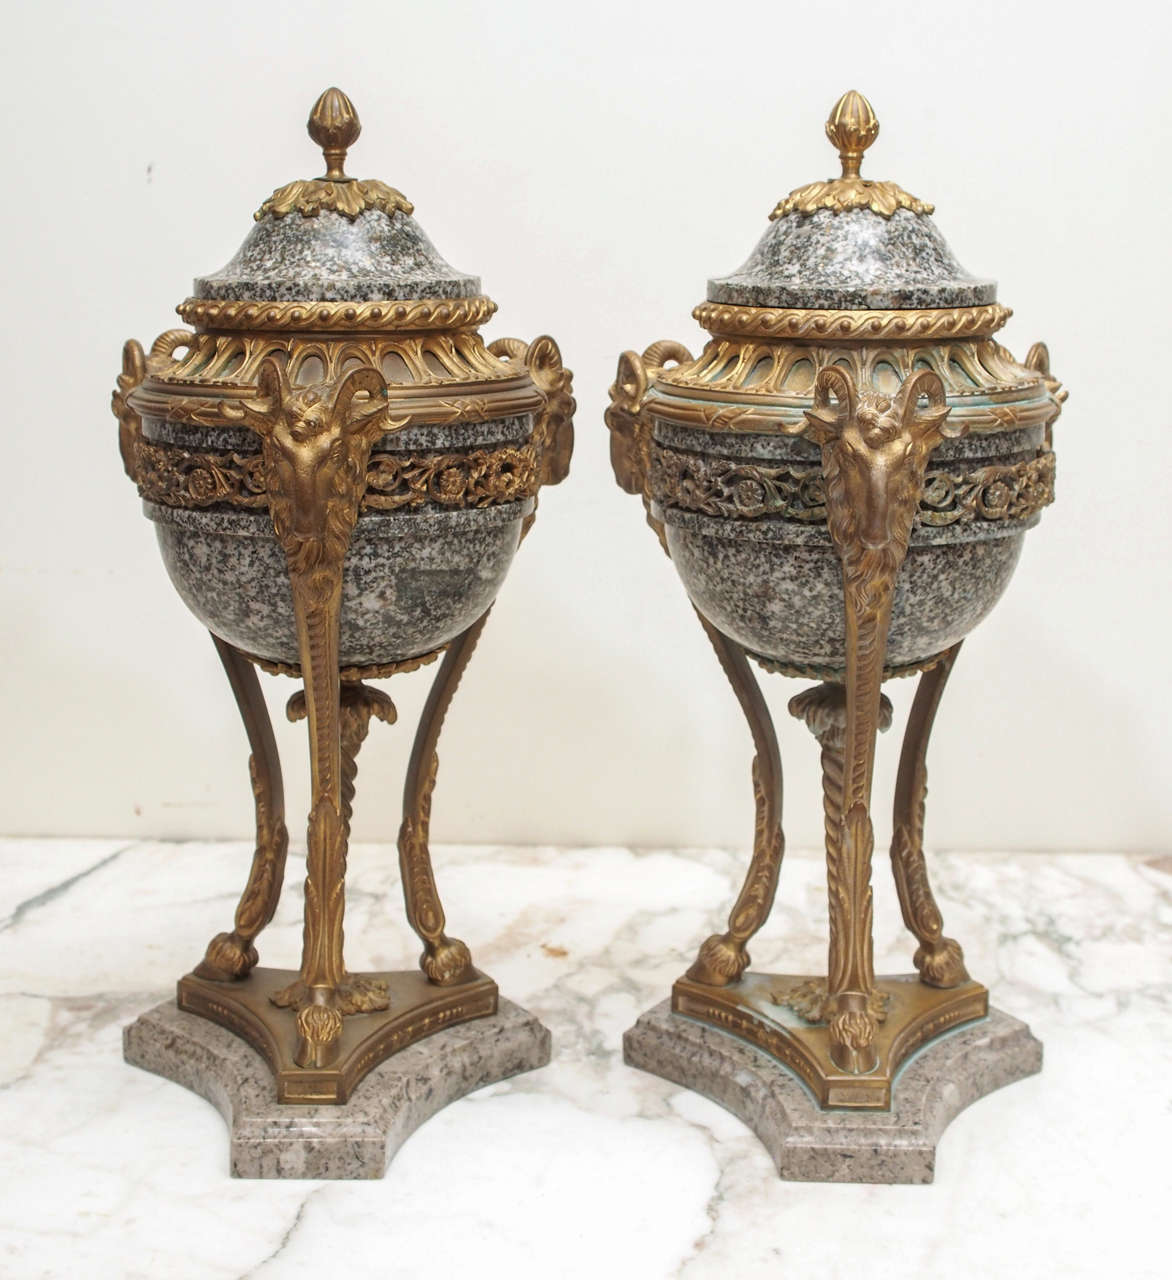 Pair of French Marble and gilt Bronze Cassolet Garniture. In classical form with foliate decoration banding and finial with rams head on trifed monopodial goat hoofs all on a marble plinth.